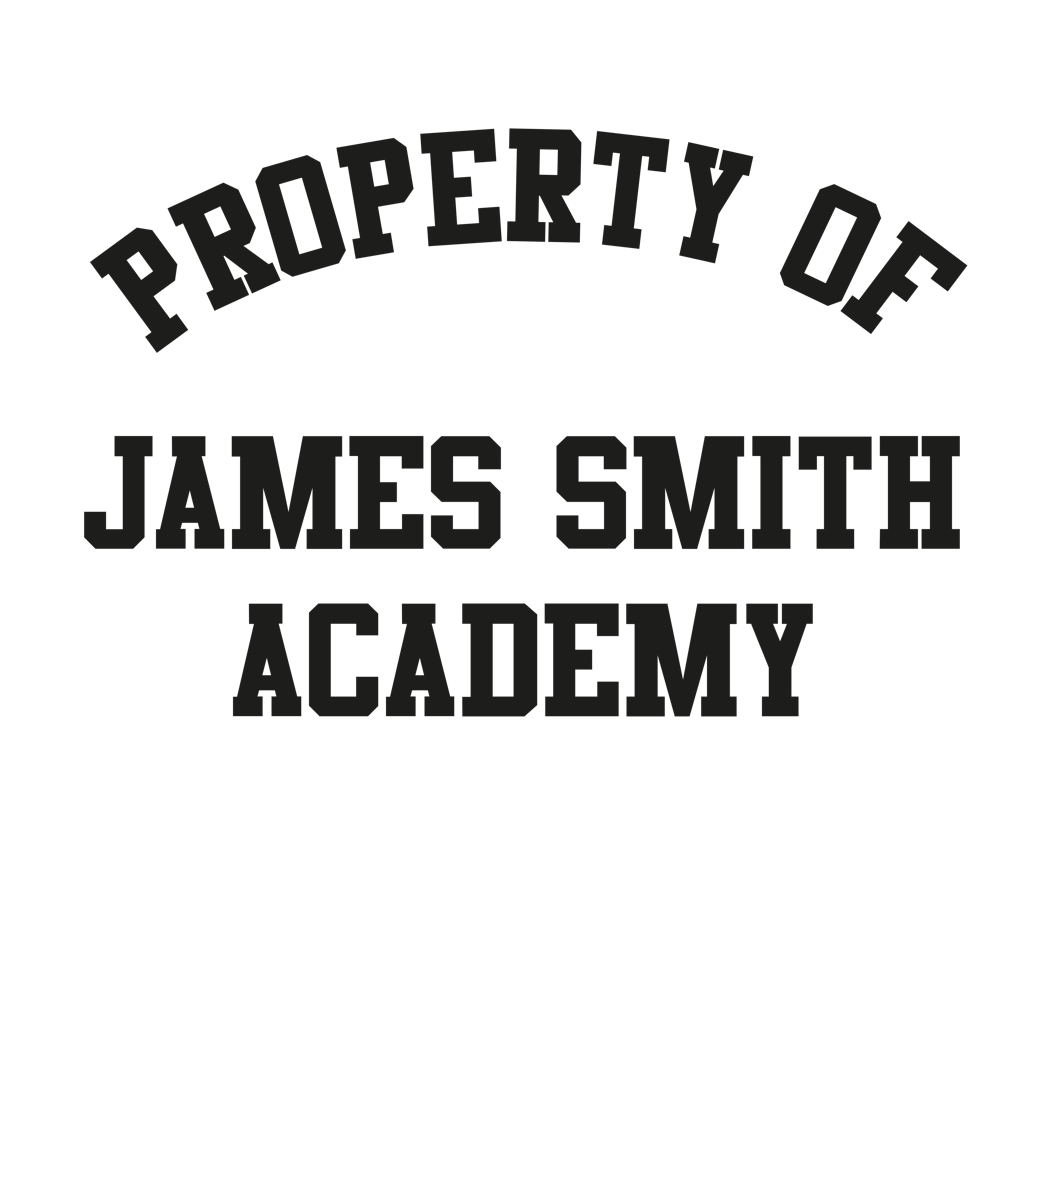 Property of James Smith